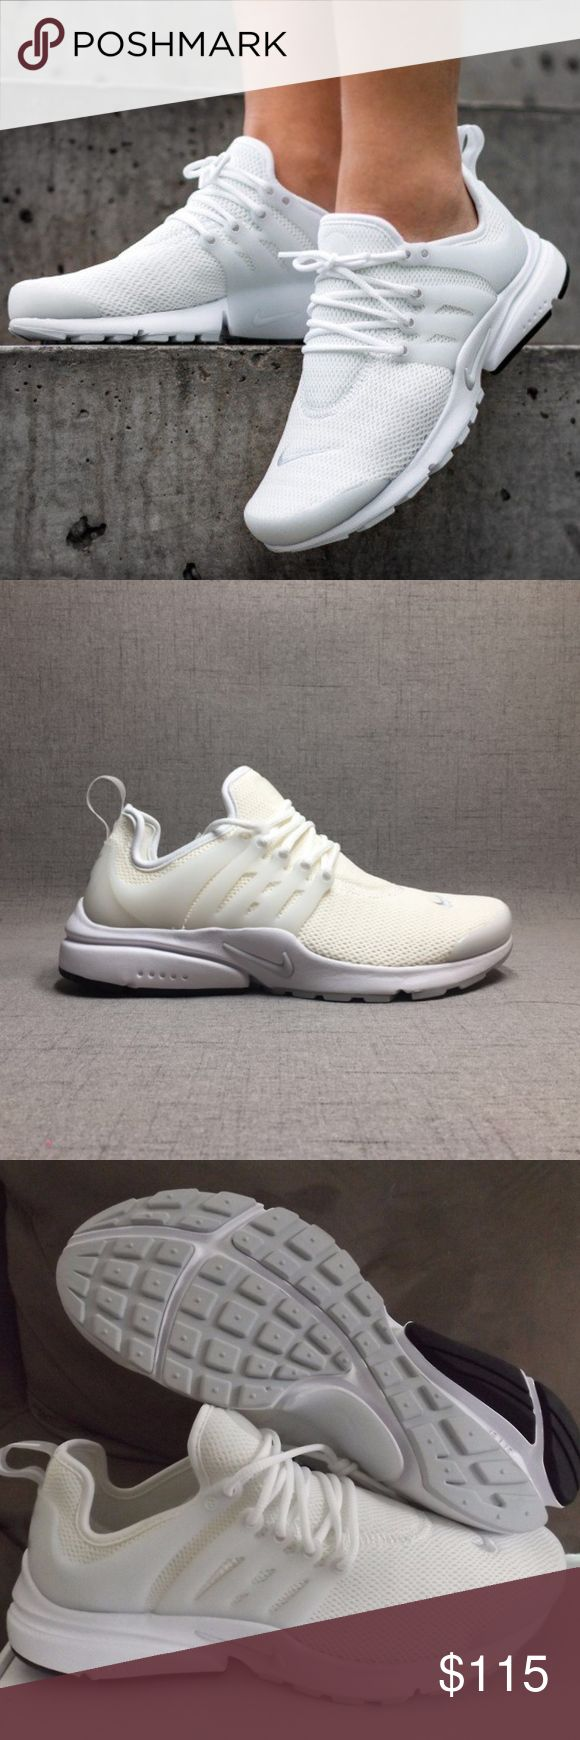 Women's Nike Air Presto (Size 8) Brand new in Box 100% authentic Excellent condition Size 8 women White/Pure platinum colorway Ships doubled boxed Secured Packaging Same day/next day shipping Nike Shoes Sneakers